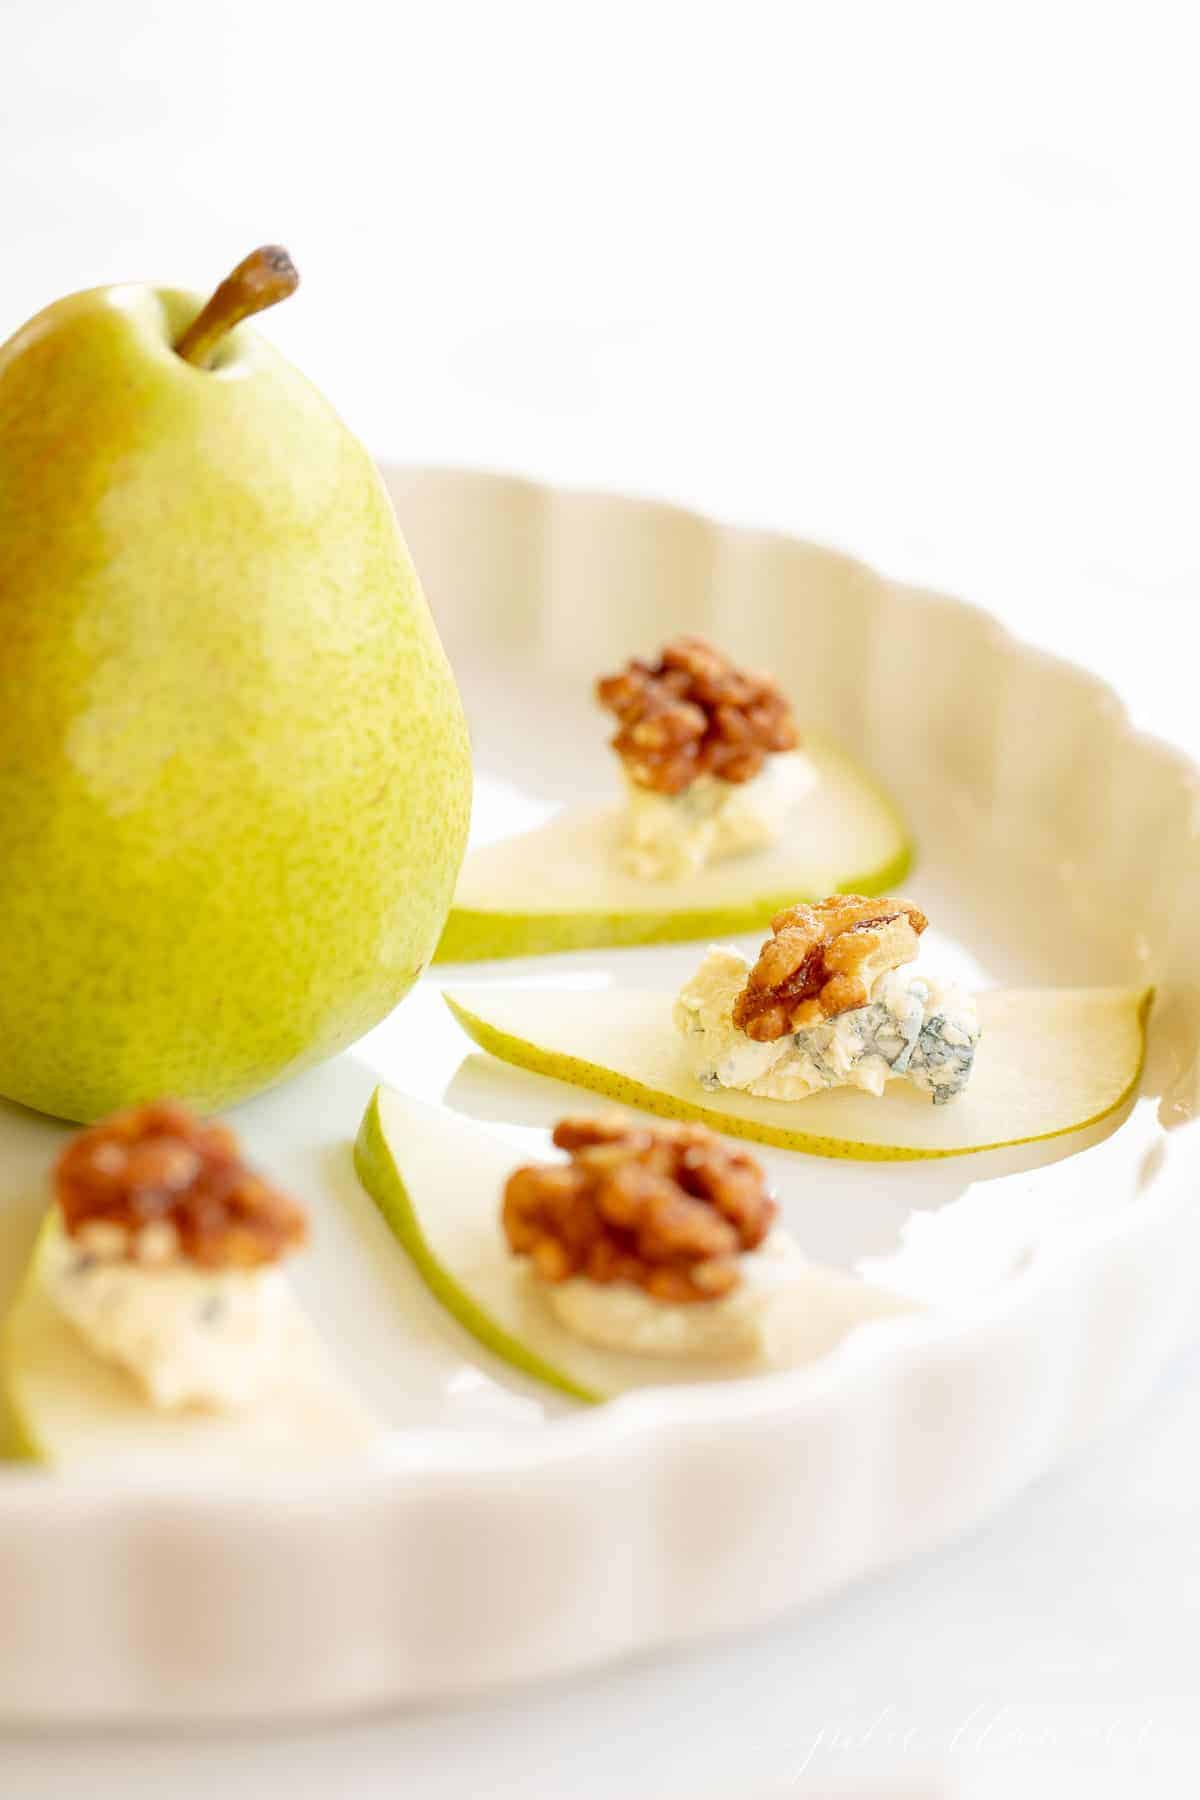 Thin pear slices topped with blue cheese and candied walnuts on a white platter with a pear in the middle.